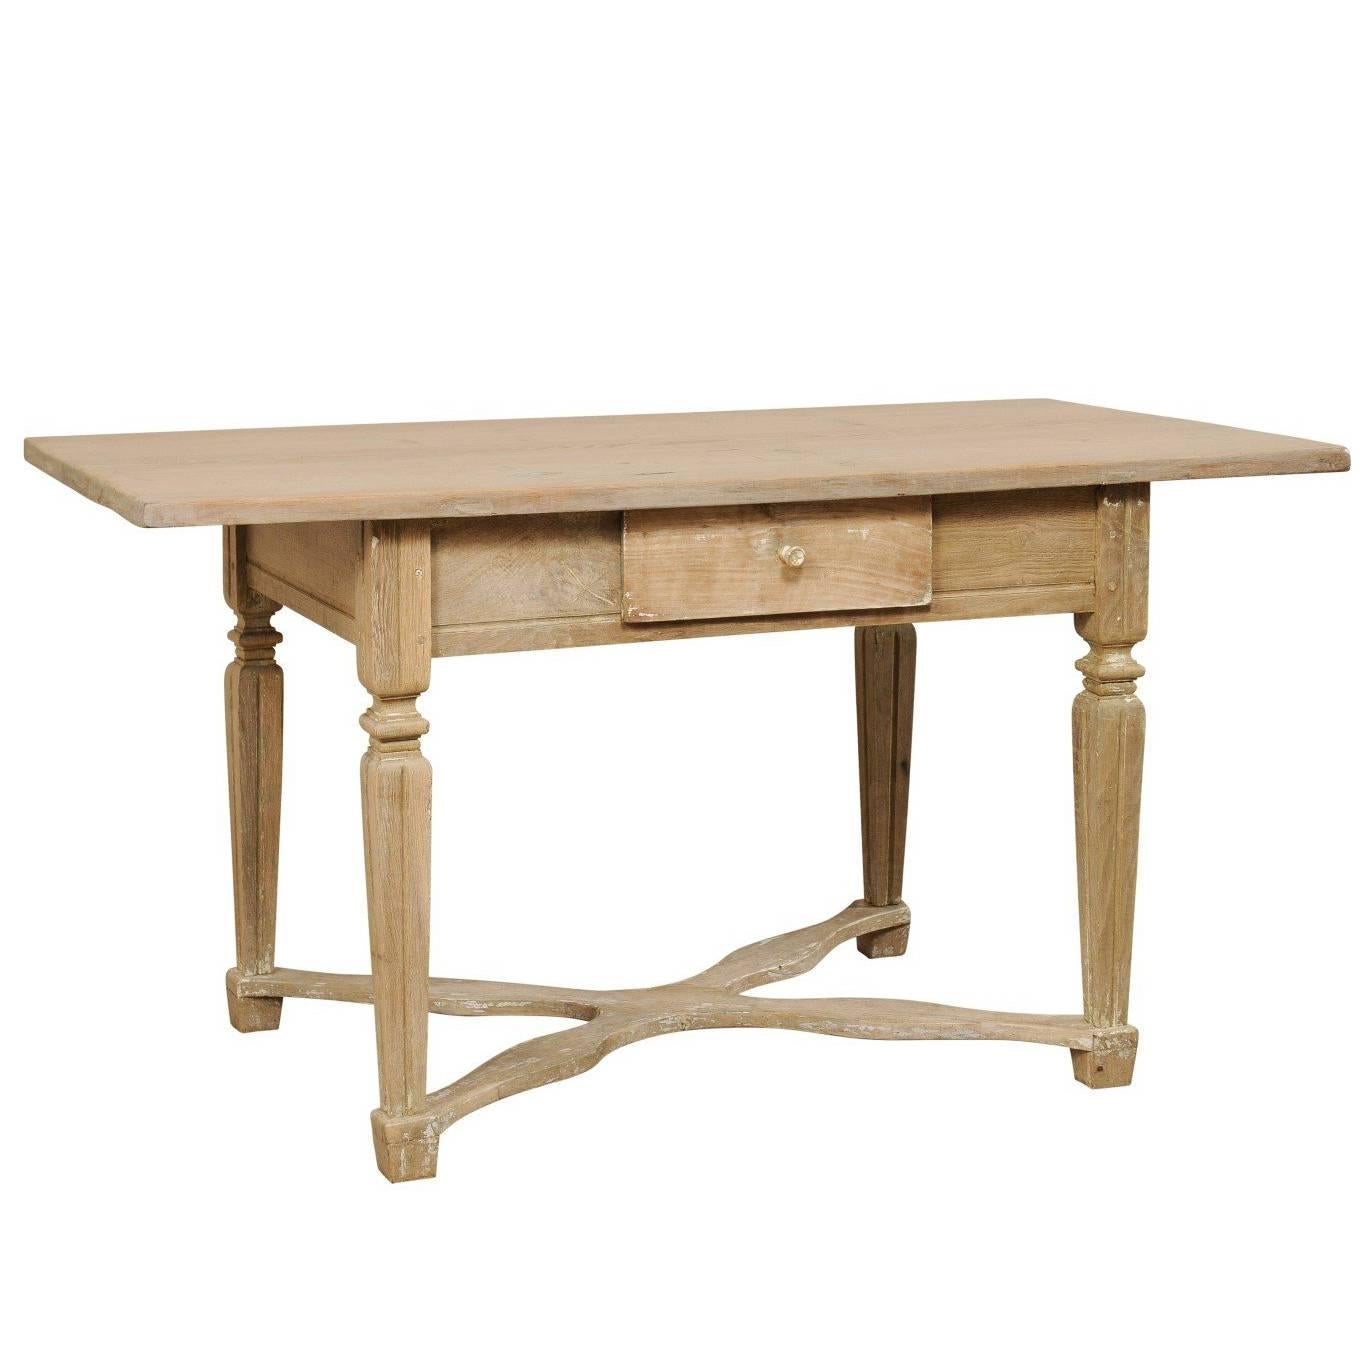 Swedish 19th Century Baroque Style Desk or Table with Single Drawer